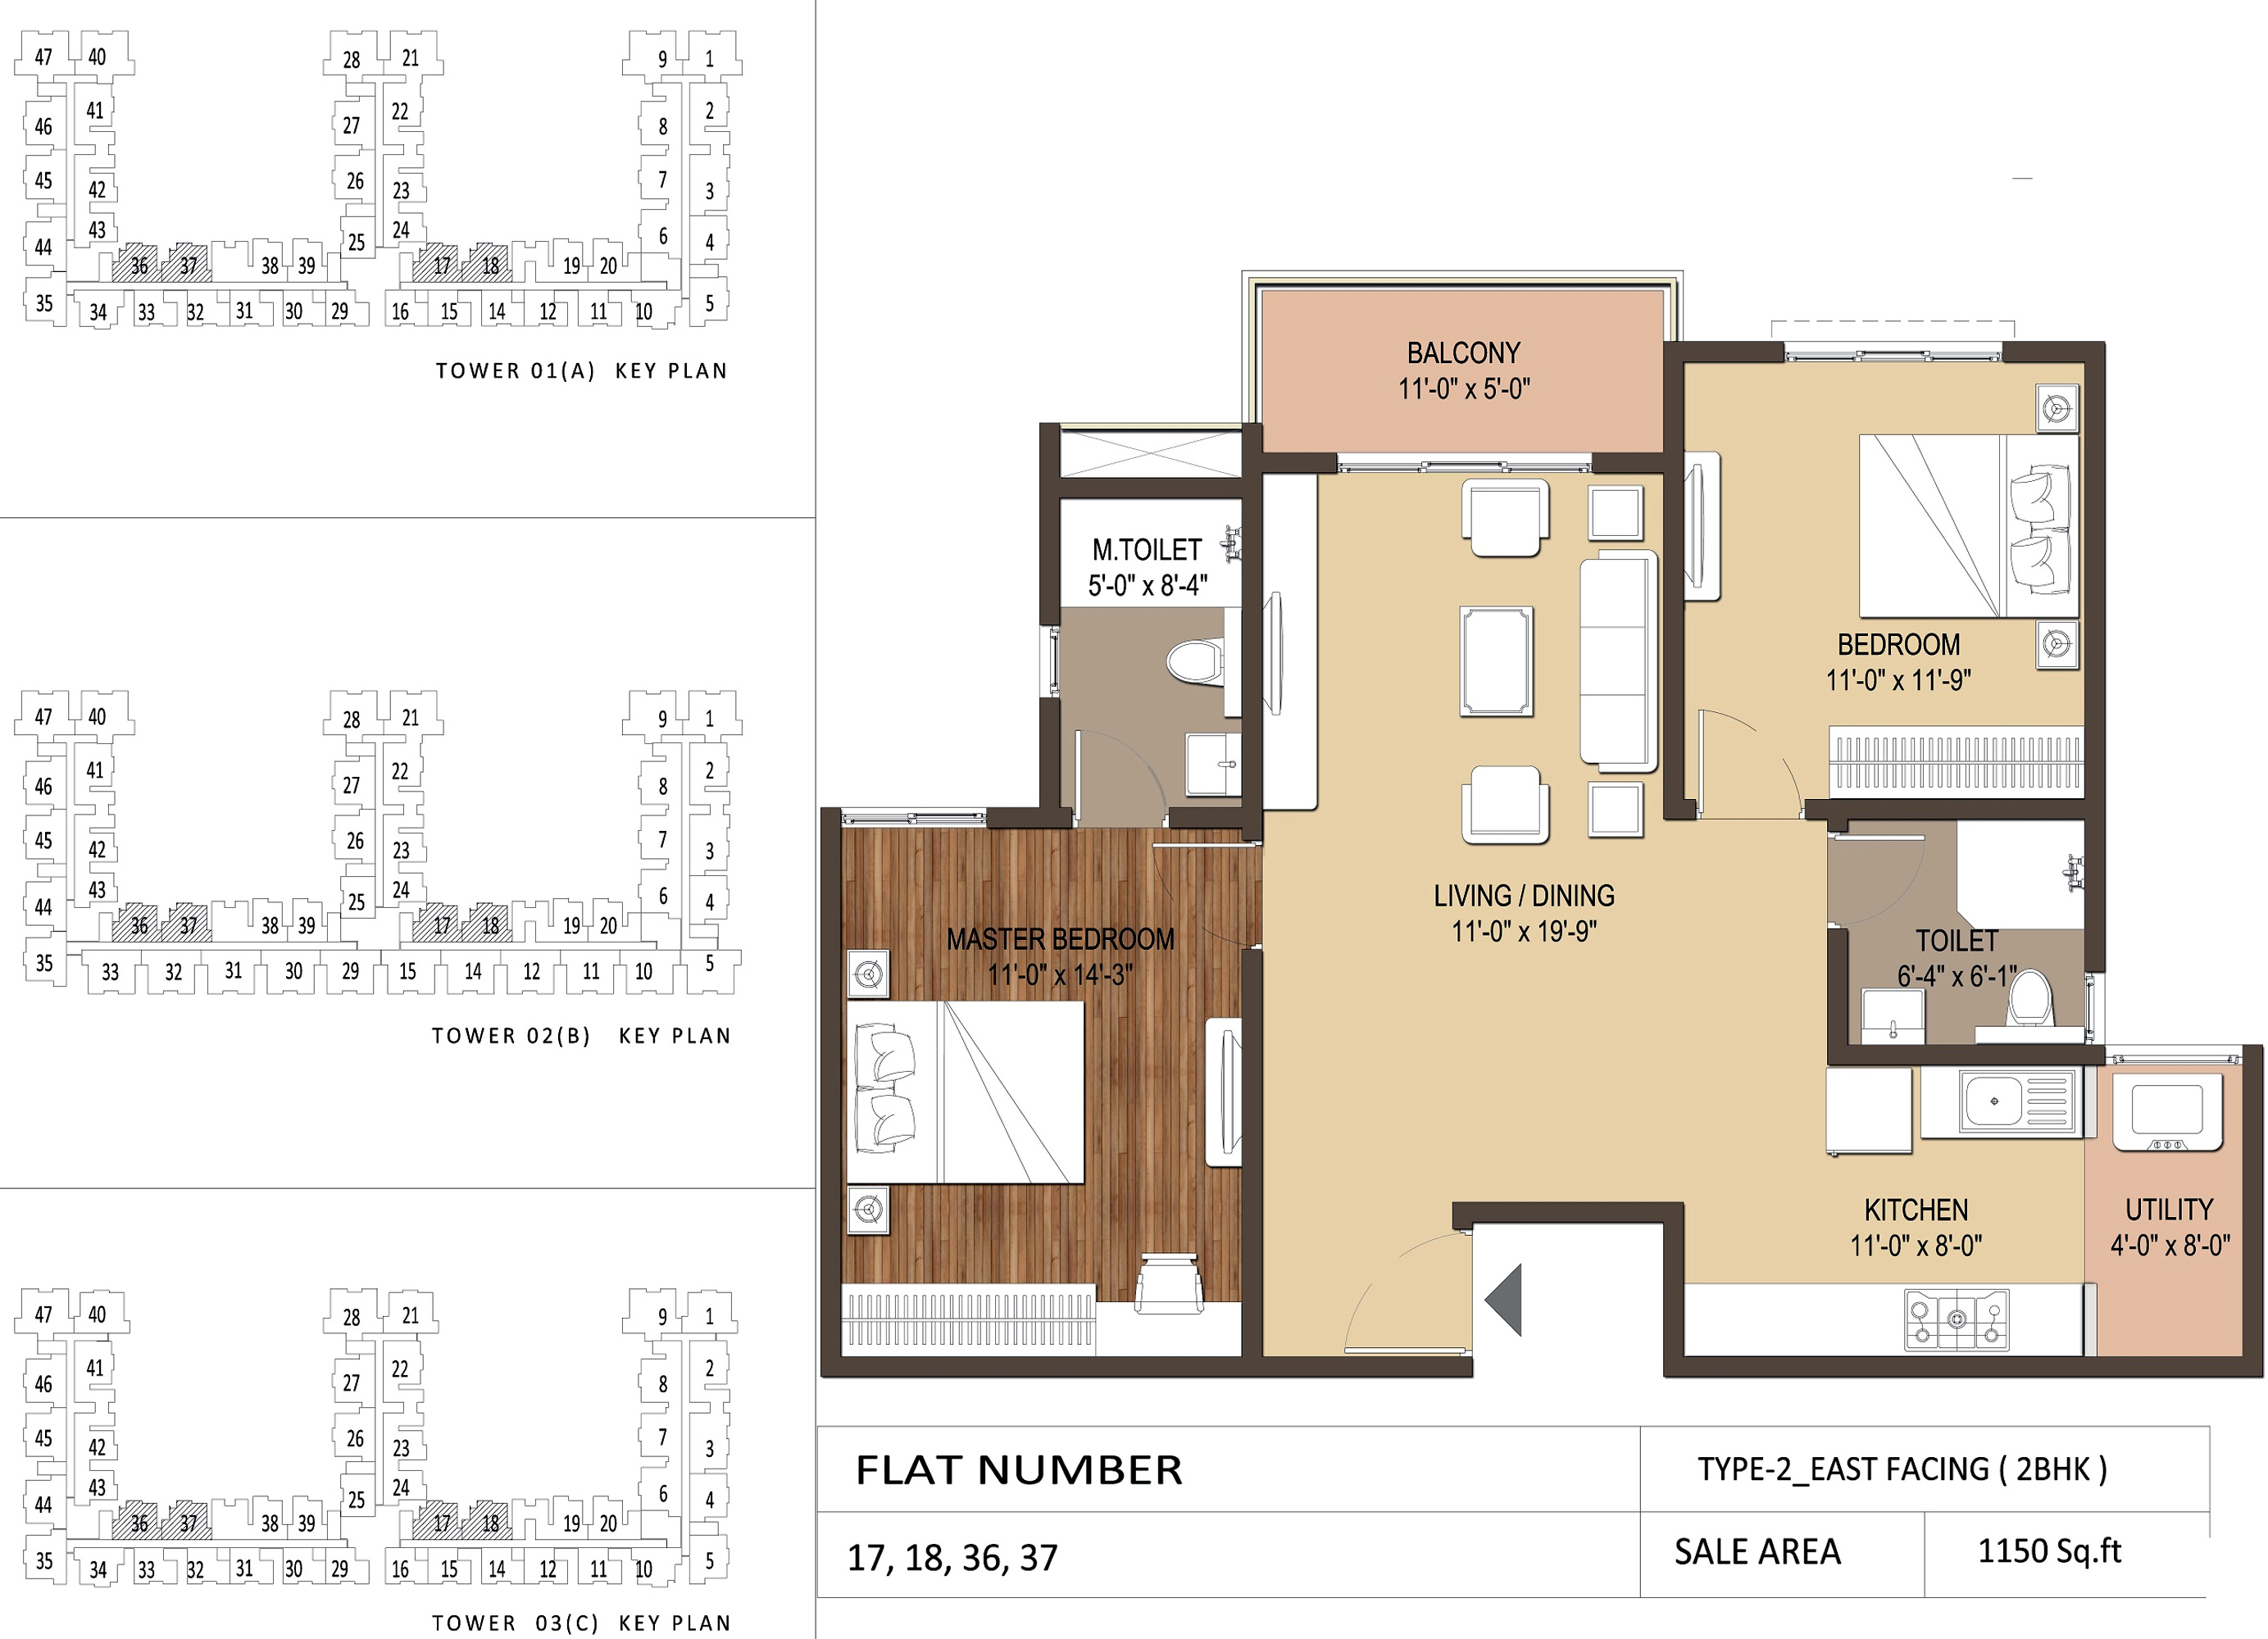 7 Brand New Multimillion Dollar Modern Homes   realtor  ® also Vishnu Vistara in Hitech City  Hyderabad   Flats for Sale in besides Alma nac lodges plans for 'sculpted' end of terrace house in besides 2844 sq ft 4 BHK 4T Apartment for Sale in Raison Infracon Casa moreover 2844 W Kilbourn Ave  Milwaukee  WI 53208   realtor  ® as well 2844 E Oak Rd  Vineland  NJ 08361   realtor  ® further 2417 W 3rd St  Waterloo  IA 50701   realtor  ® as well GM Infinite Global Techies Town in Electronic City Phase 1 together with  furthermore Aswani Aaeesha in Electronic City Phase 2  Bangalore   Price additionally 7 Brand New Multimillion Dollar Modern Homes   realtor  ®. on global house plan 2844